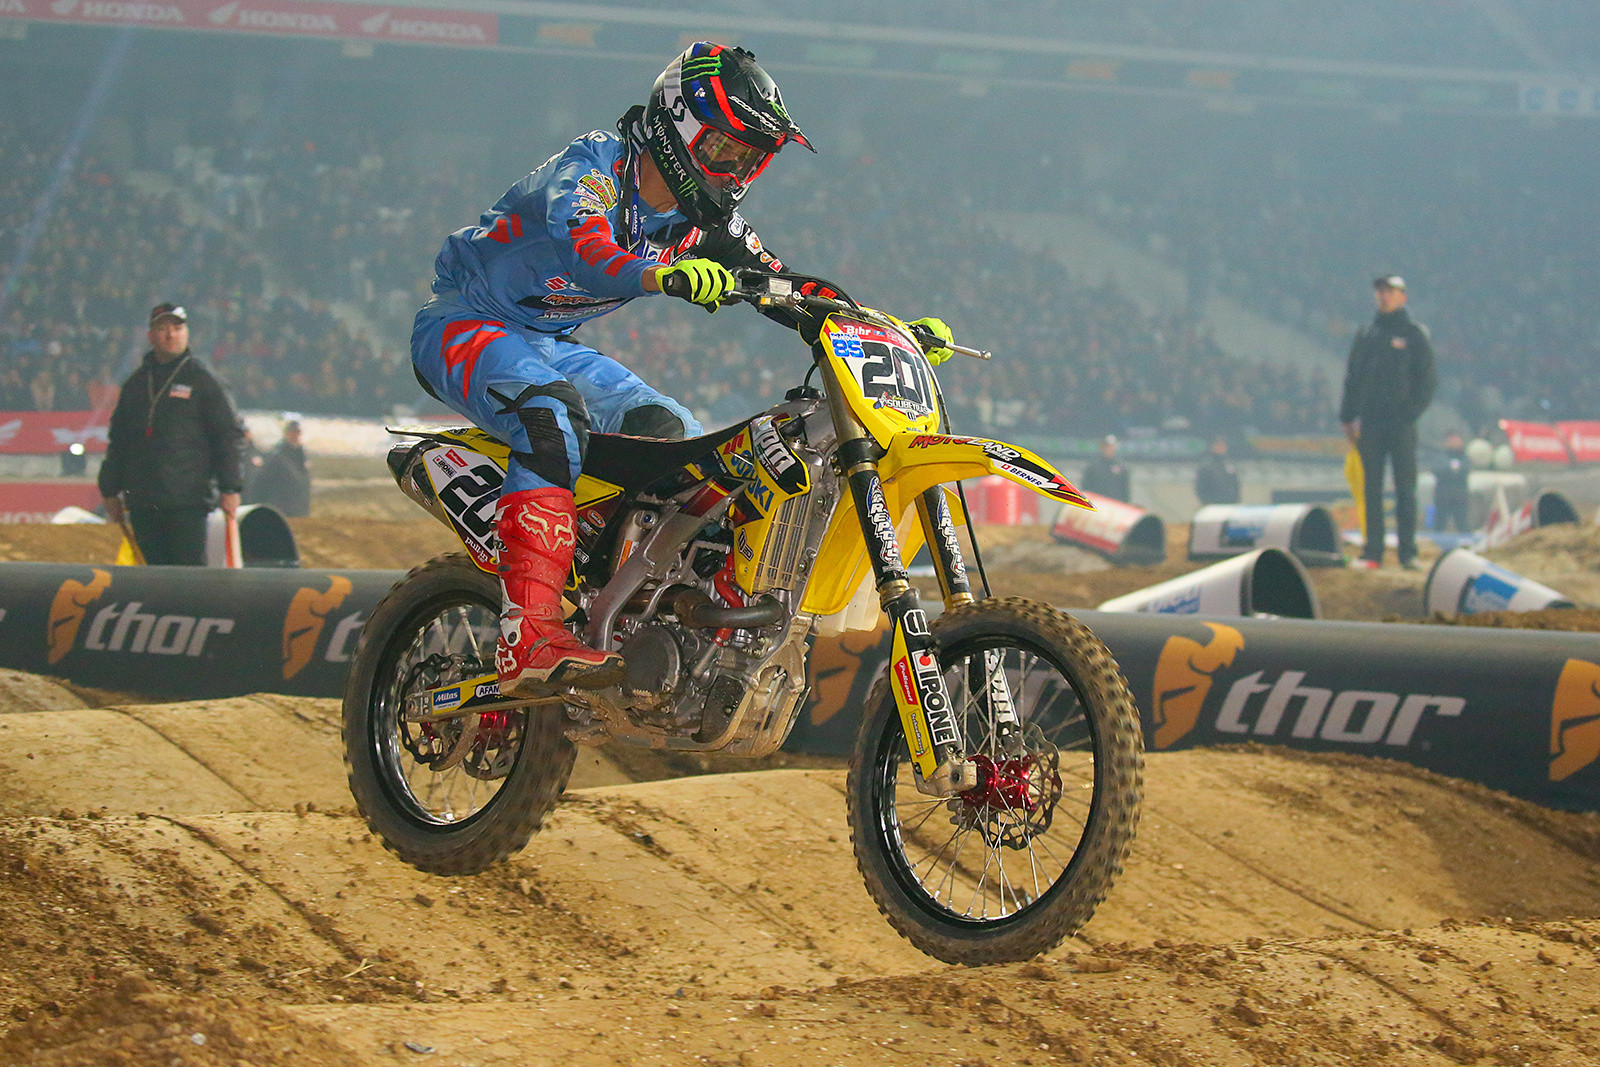 Cedric Soubeyras - Photo Gallery: Paris-Lille Supercross, Day 2 - Motocross Pictures - Vital MX